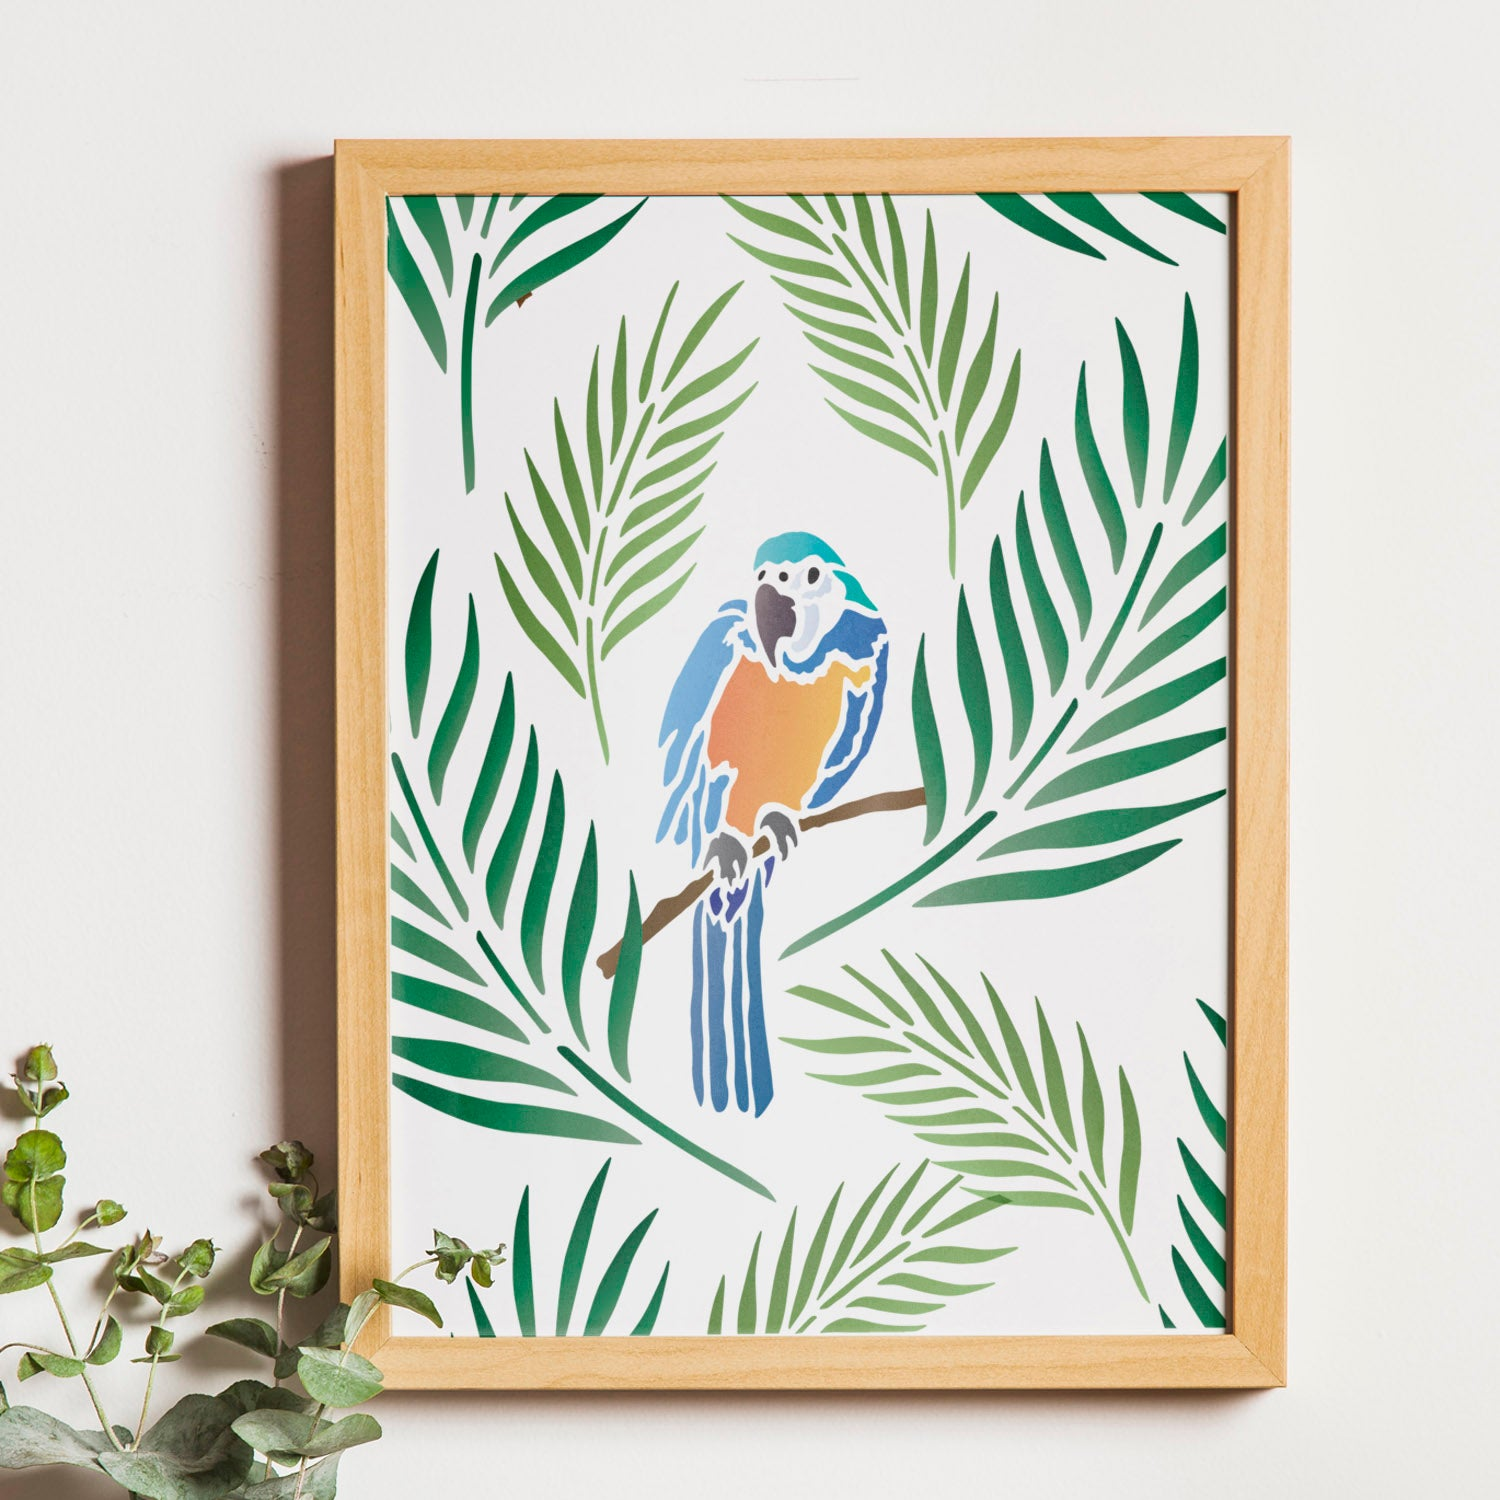 CraftStar Parrot and Palm Leaf Stencil as framed print